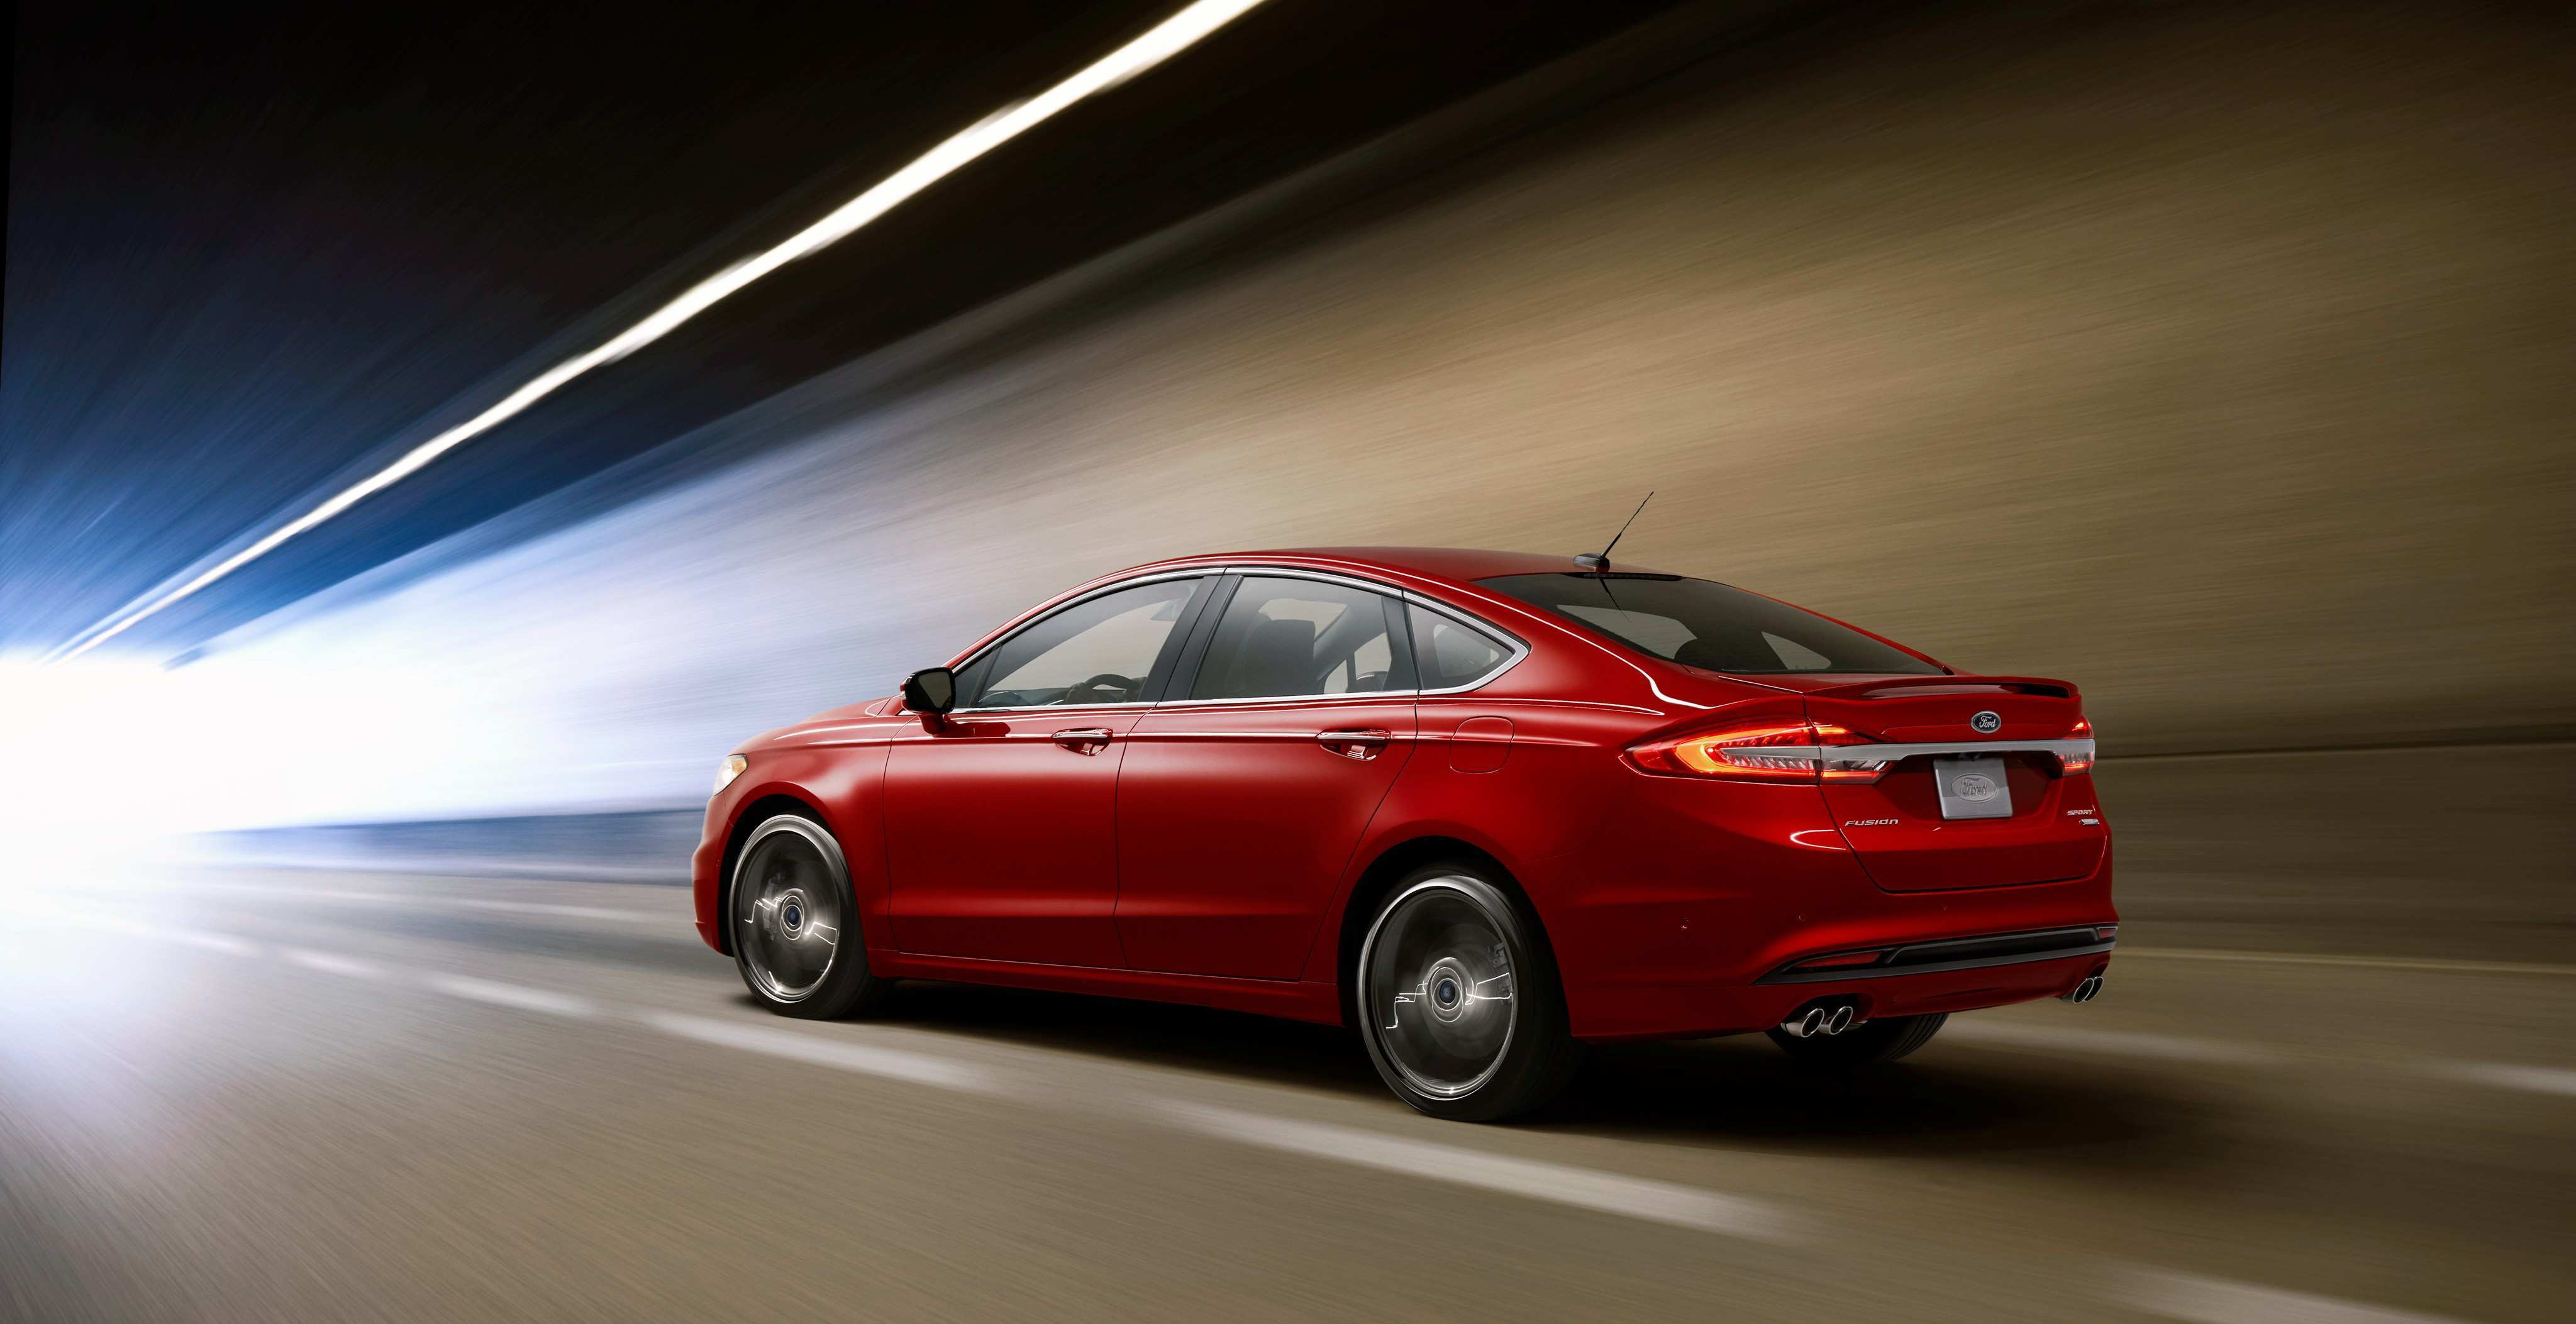 47 All New 2020 Ford Mondeo Model for 2020 Ford Mondeo